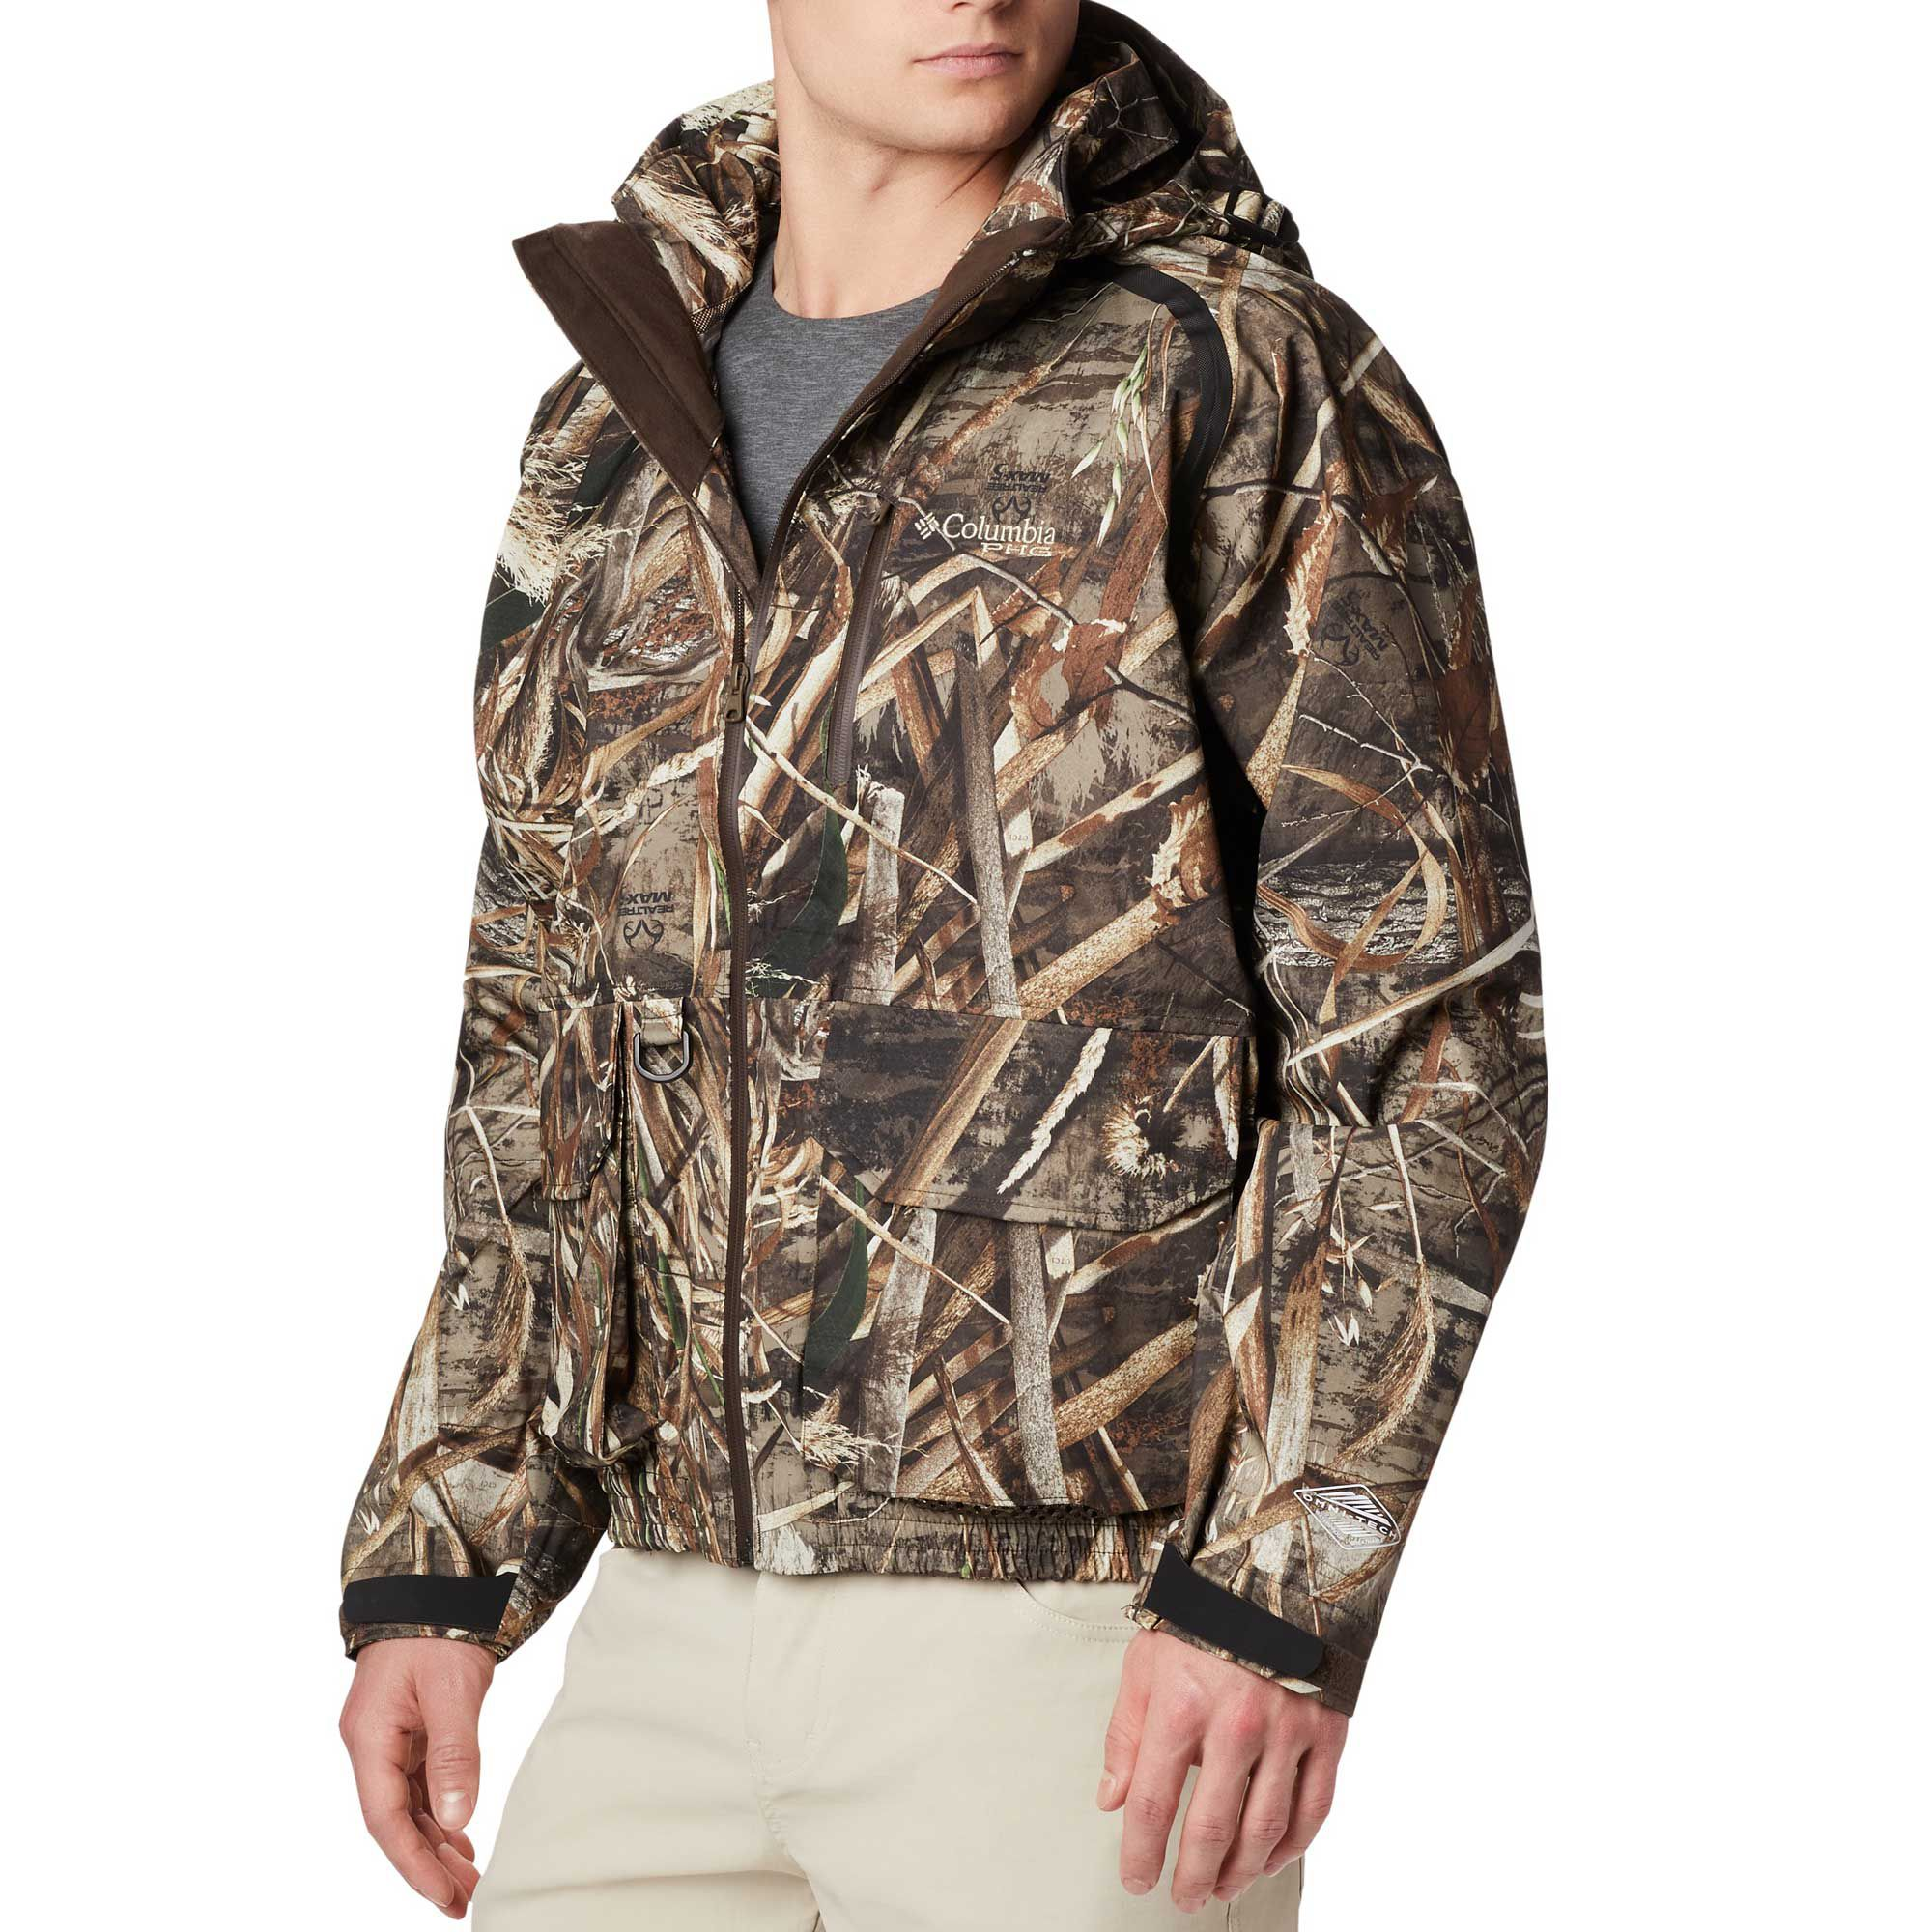 Columbia Men's Widgeon Wader Shell Hunting Jacket, Small, Brown